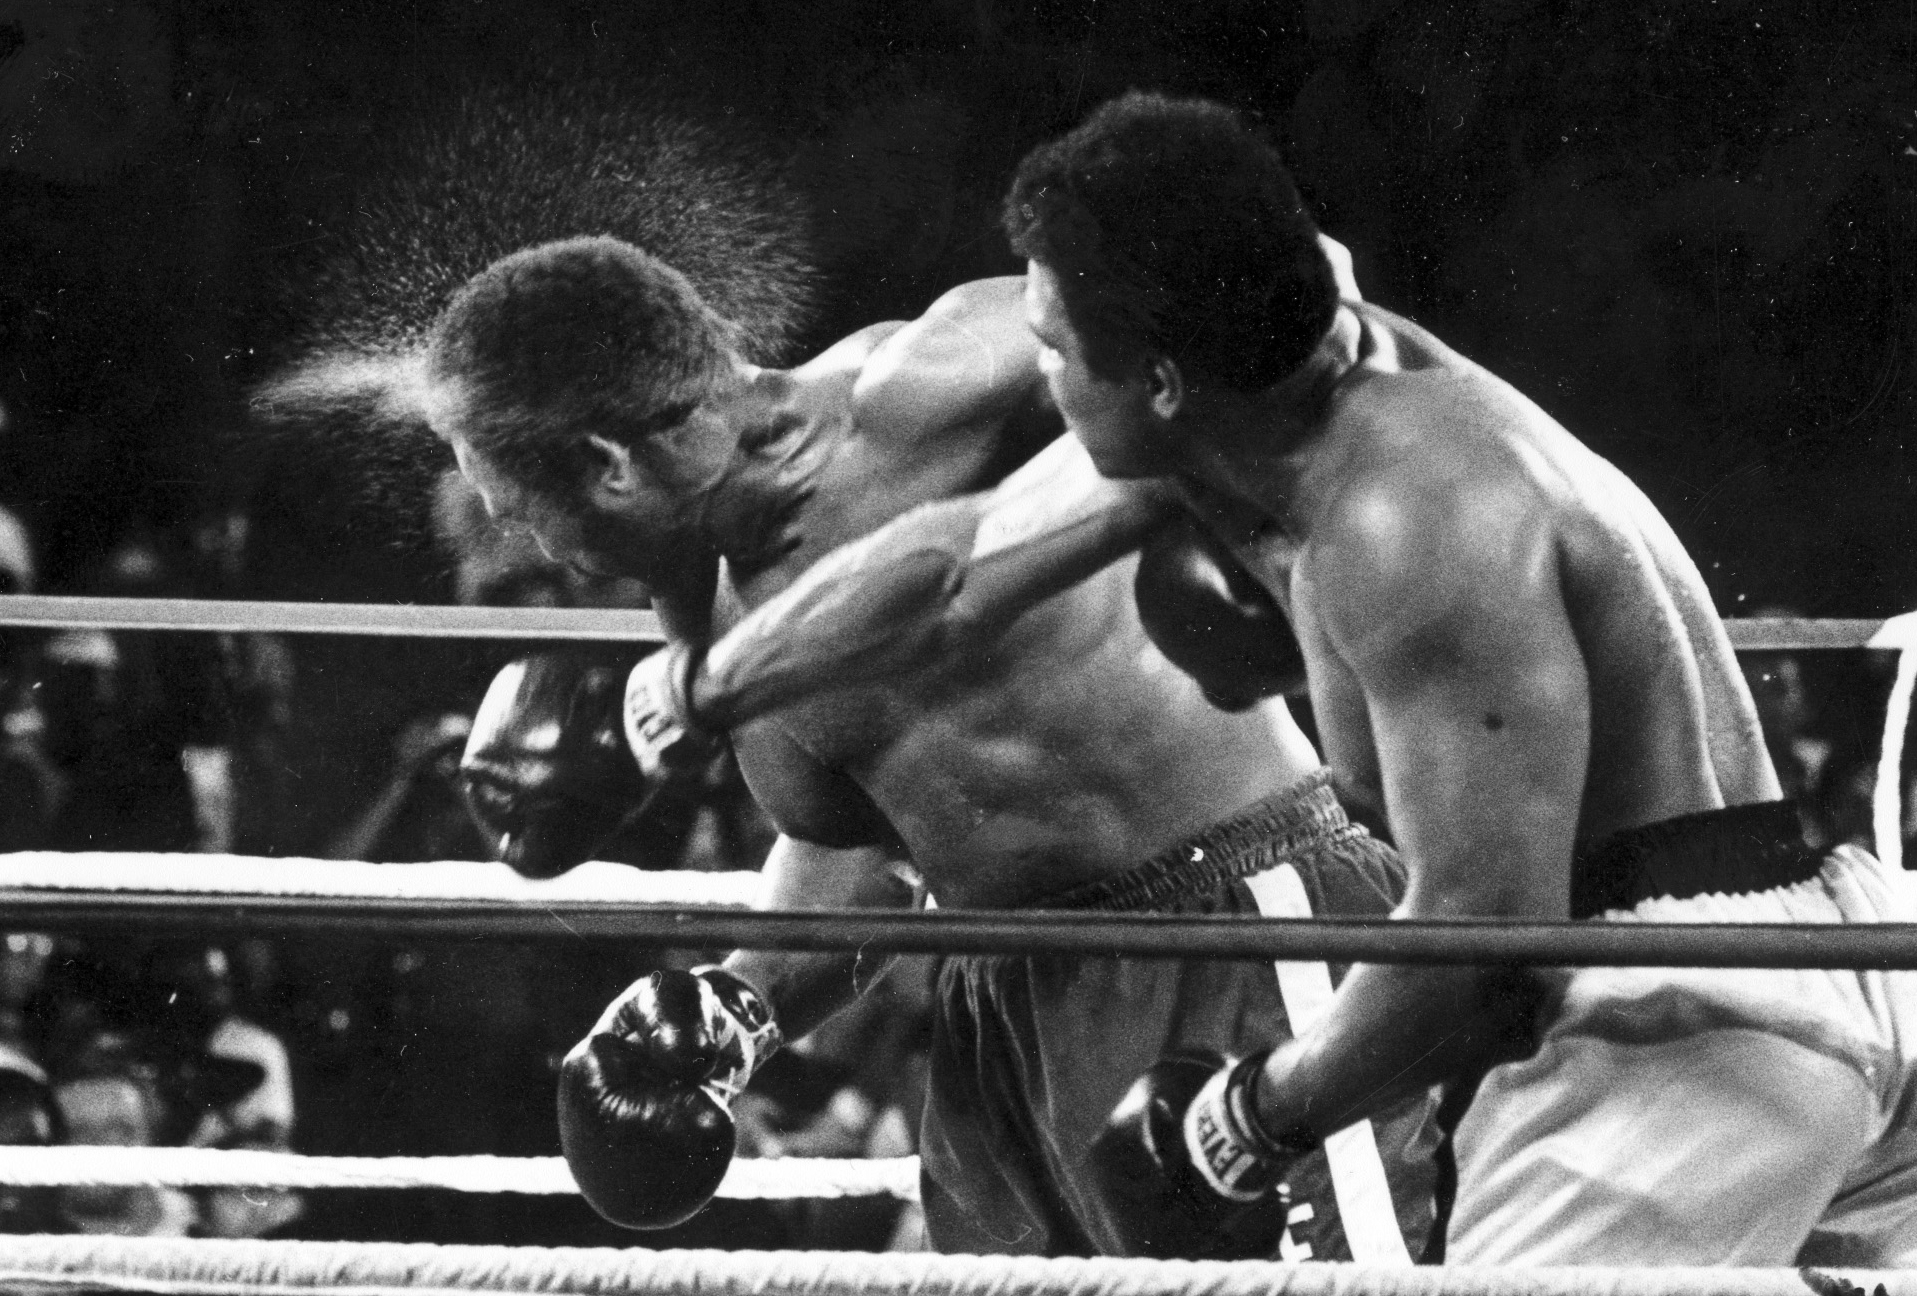 Rumble in the jungle 1974 Boxing Fight, George Foreman Zaire Muhammed Ali